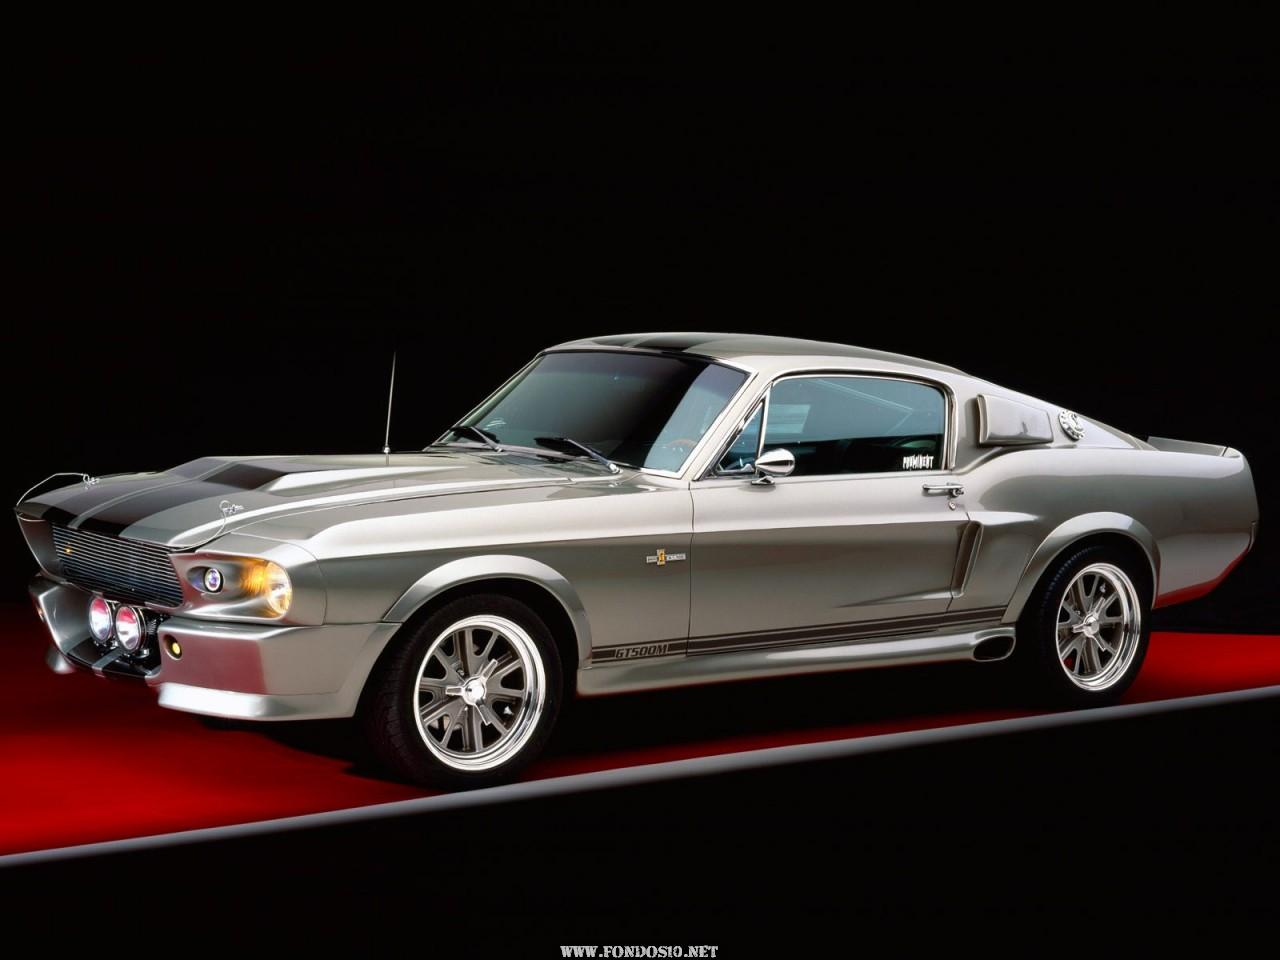 Ford Mustang Wallpaper 4454 Hd Wallpapers in Cars   Imagescicom 1280x960